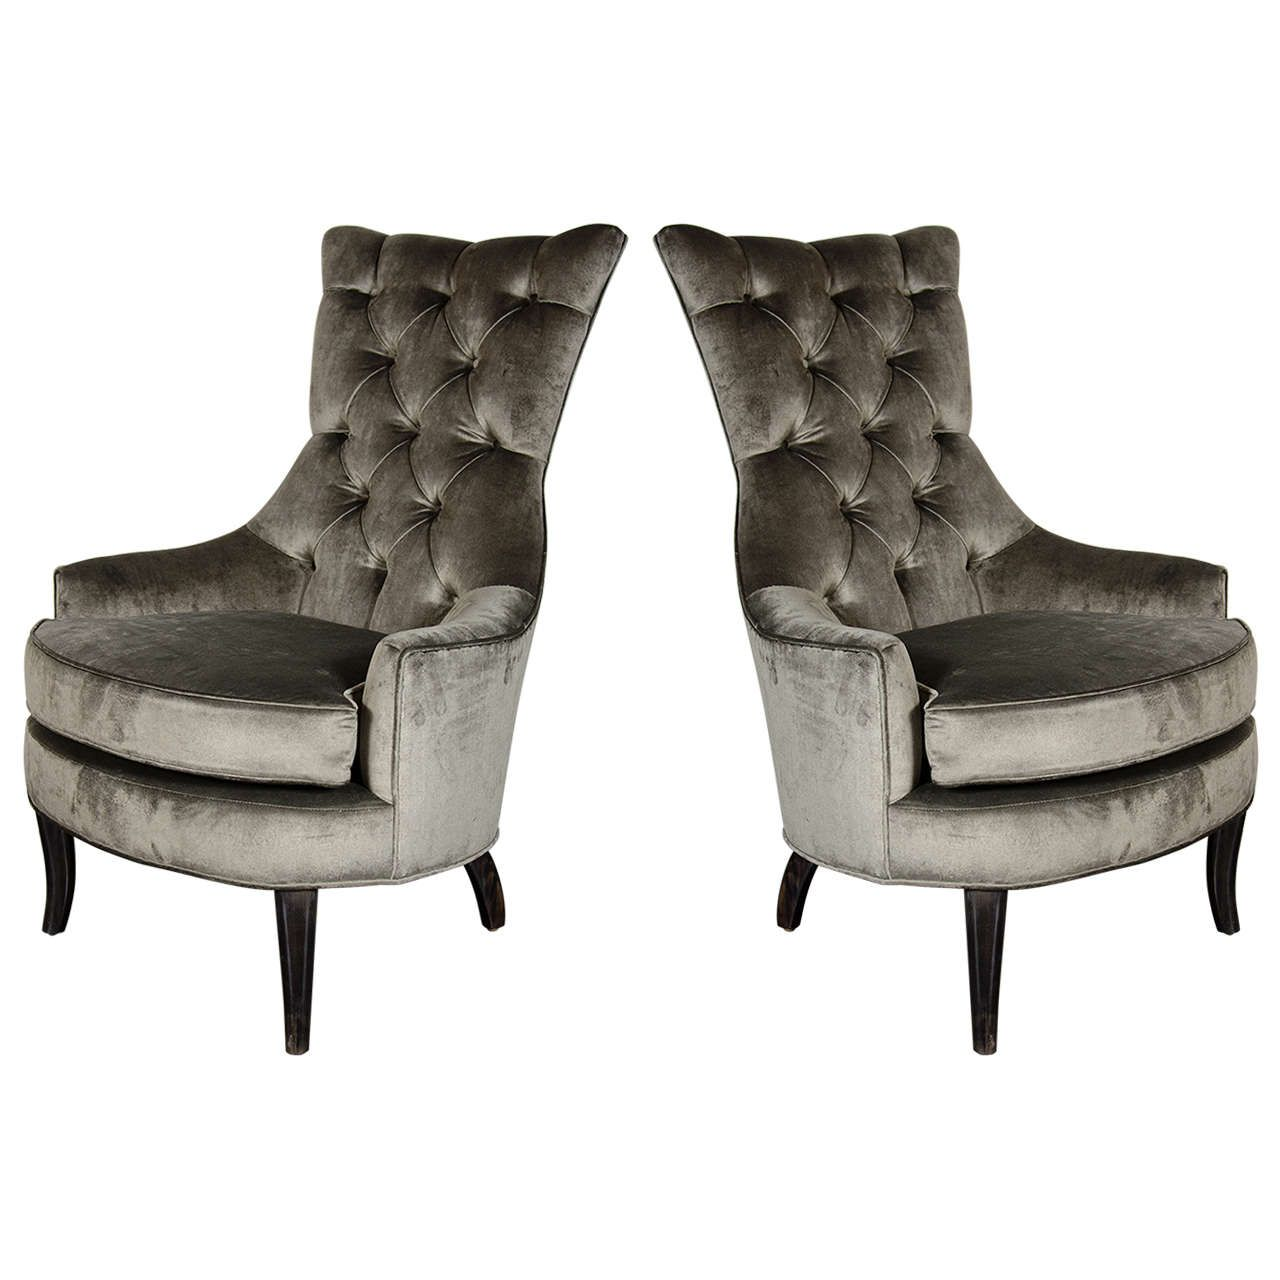 Pair of Mid-Century Modern Tufted High-Back Chairs in ...